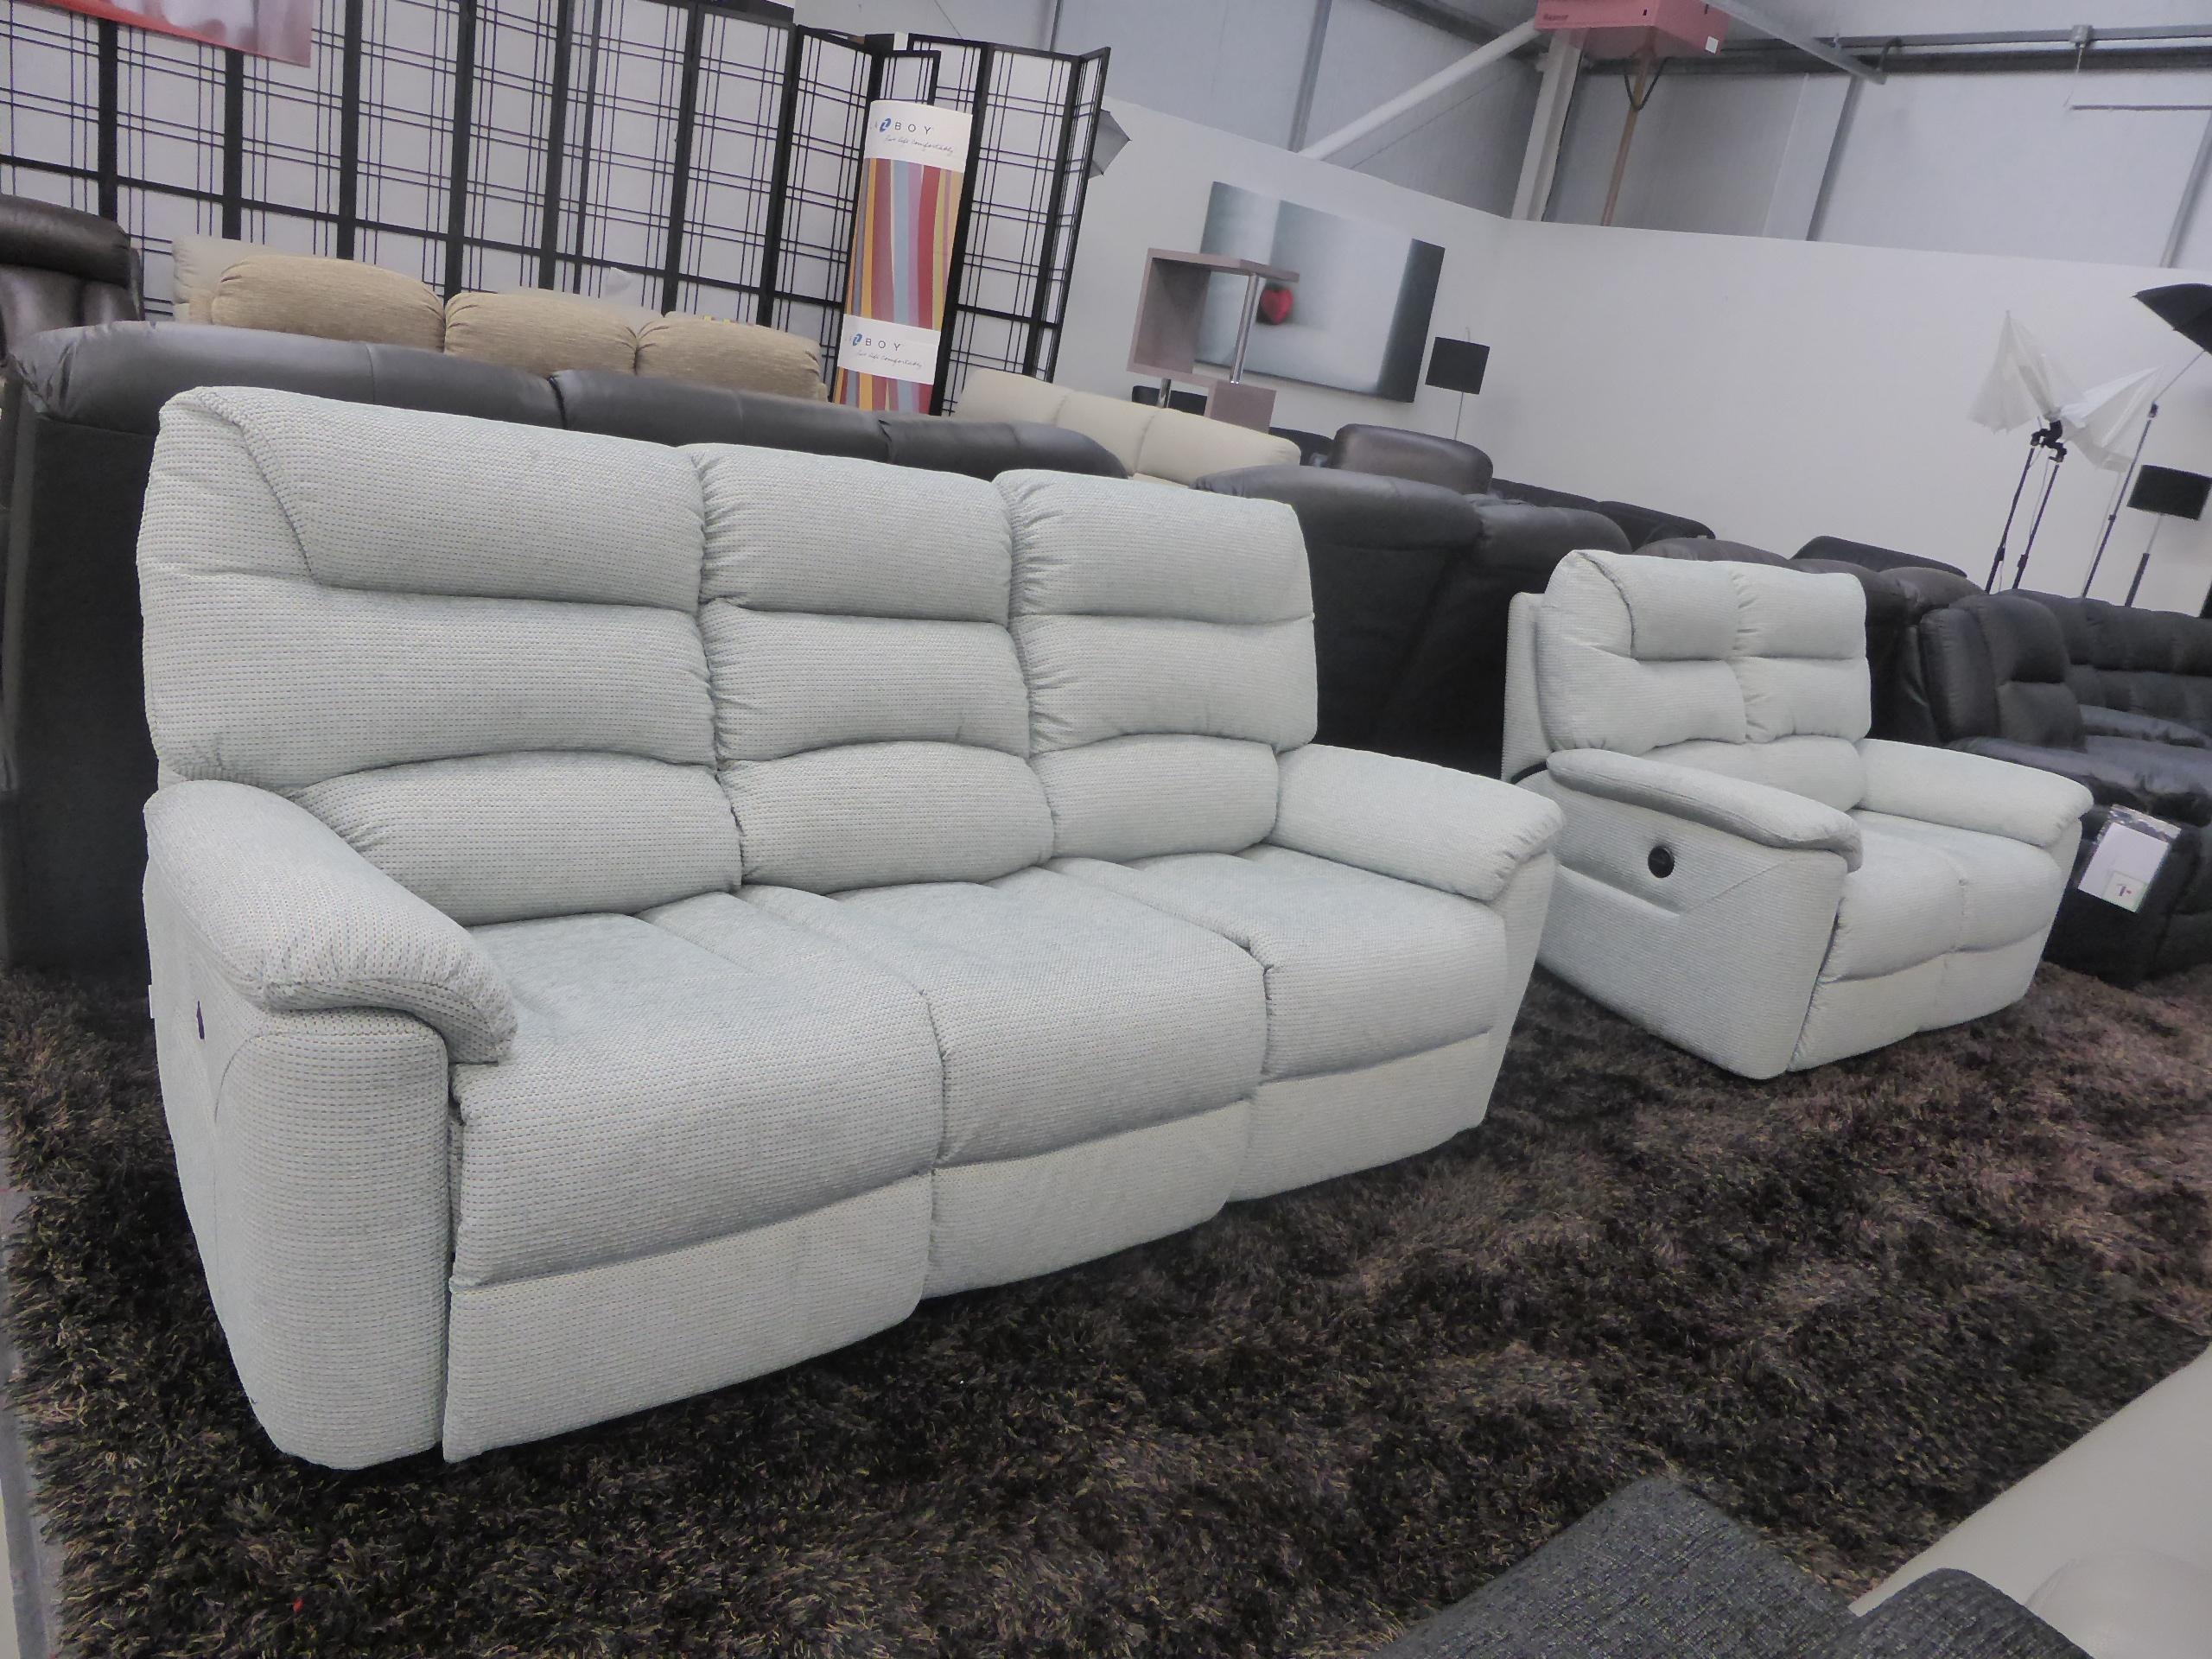 La Z Boy Manhattan 3 & 2 Seater Power Recliners In Fabric Inside Lazy Boy Manhattan Sofas (Image 3 of 21)